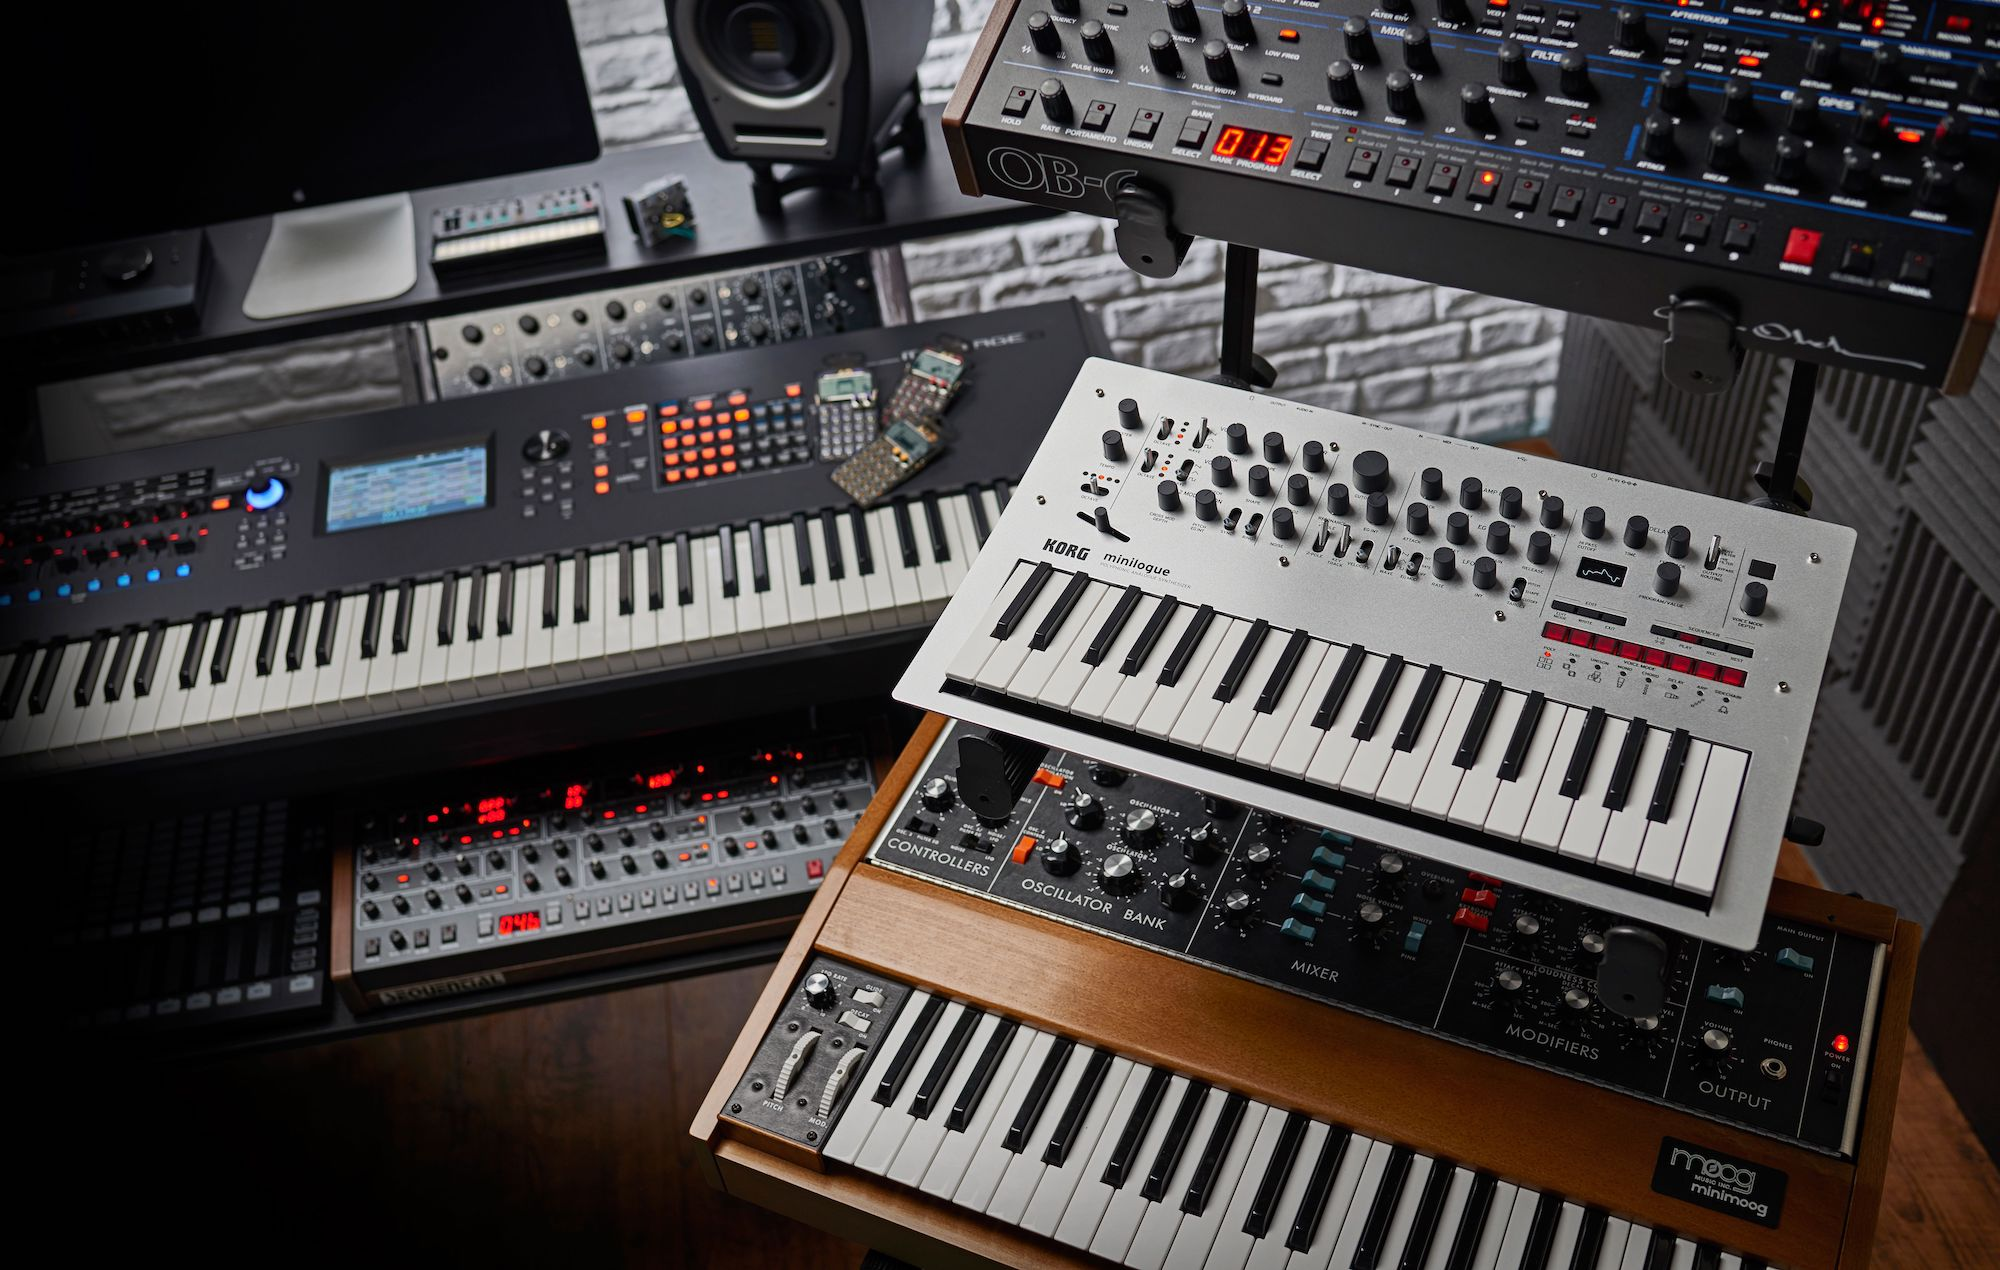 Korg and Moog are giving away their synthesizer apps for free